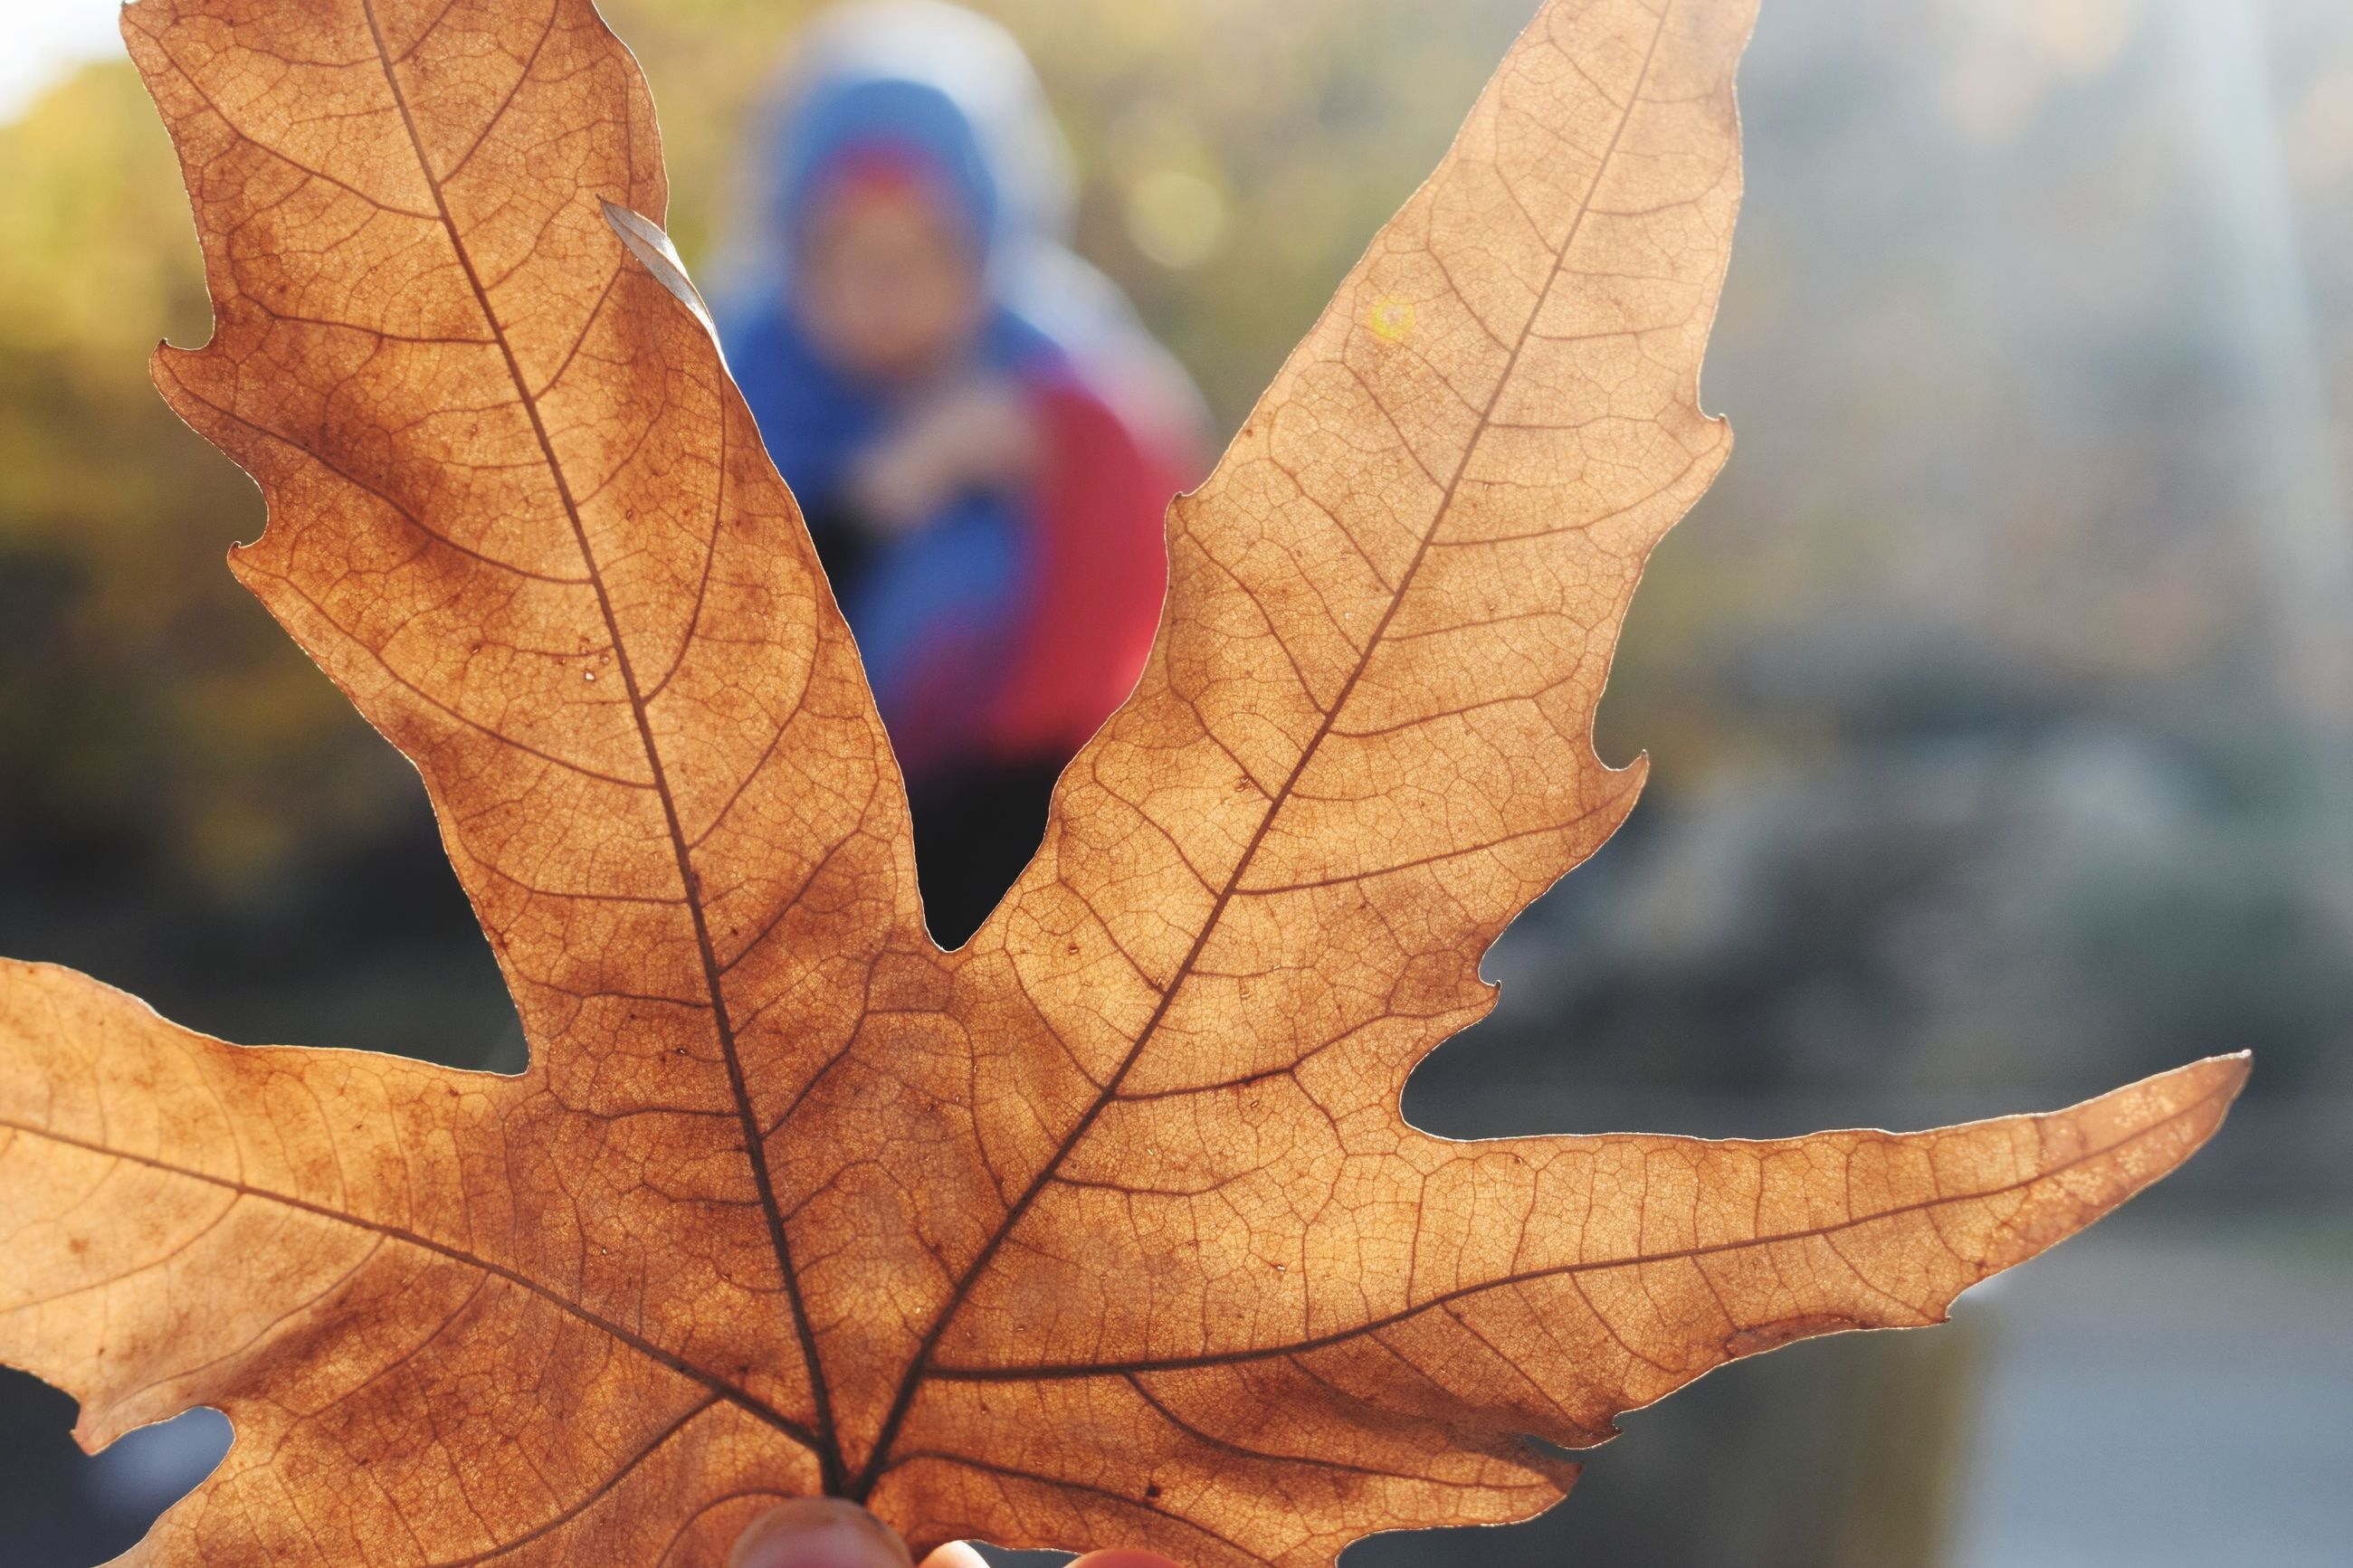 autumn, leaf, change, dry, outdoors, maple, day, maple leaf, close-up, focus on foreground, nature, no people, beauty in nature